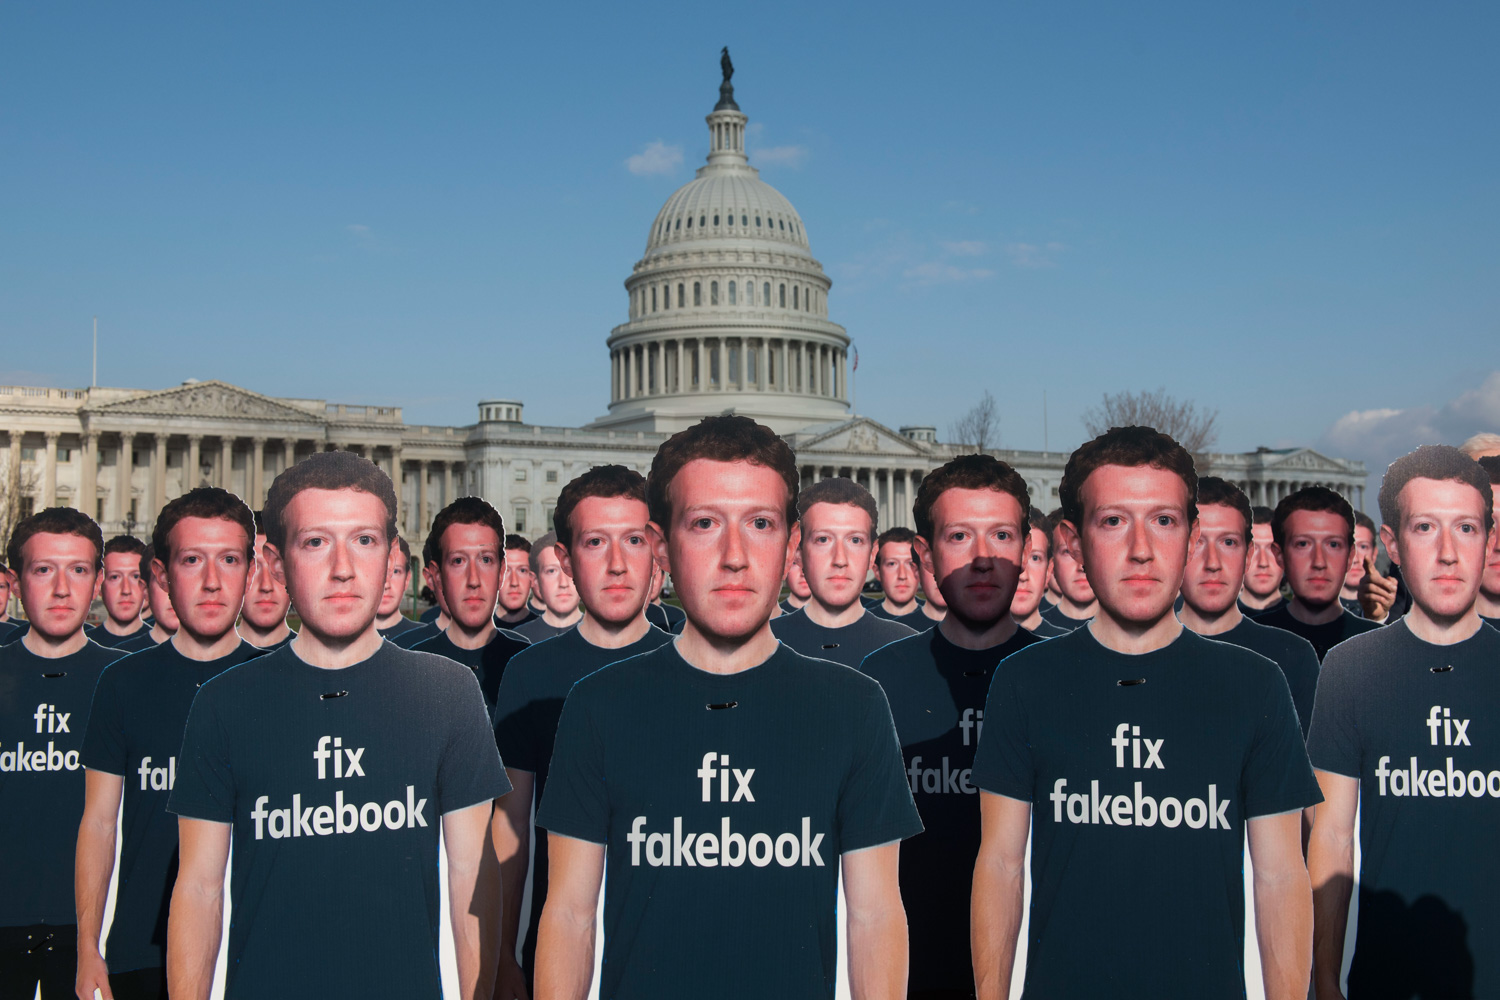 <div class='meta'><div class='origin-logo' data-origin='none'></div><span class='caption-text' data-credit='Kevin Wolf/AP images for AVAAZ'>Advocacy group Avaaz placed 100 cardboard cutouts of Mark Zuckerberg outside the U.S. Capitol in Washington on the day of his testimony to Congress.</span></div>